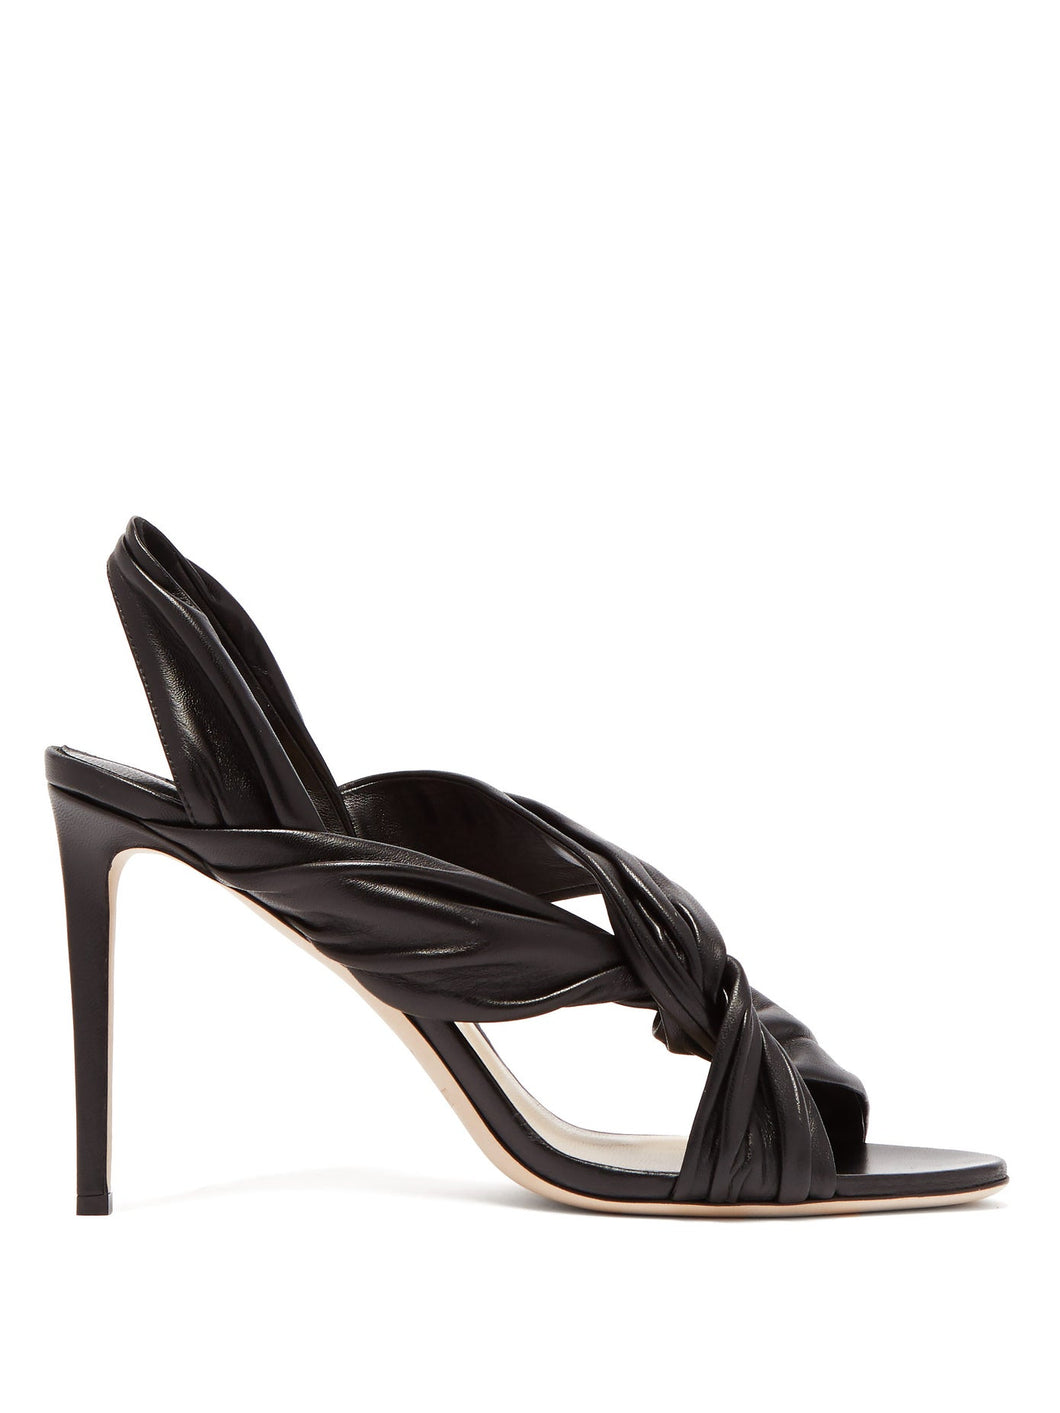 Lalia 85 twisted leather slingback sandals